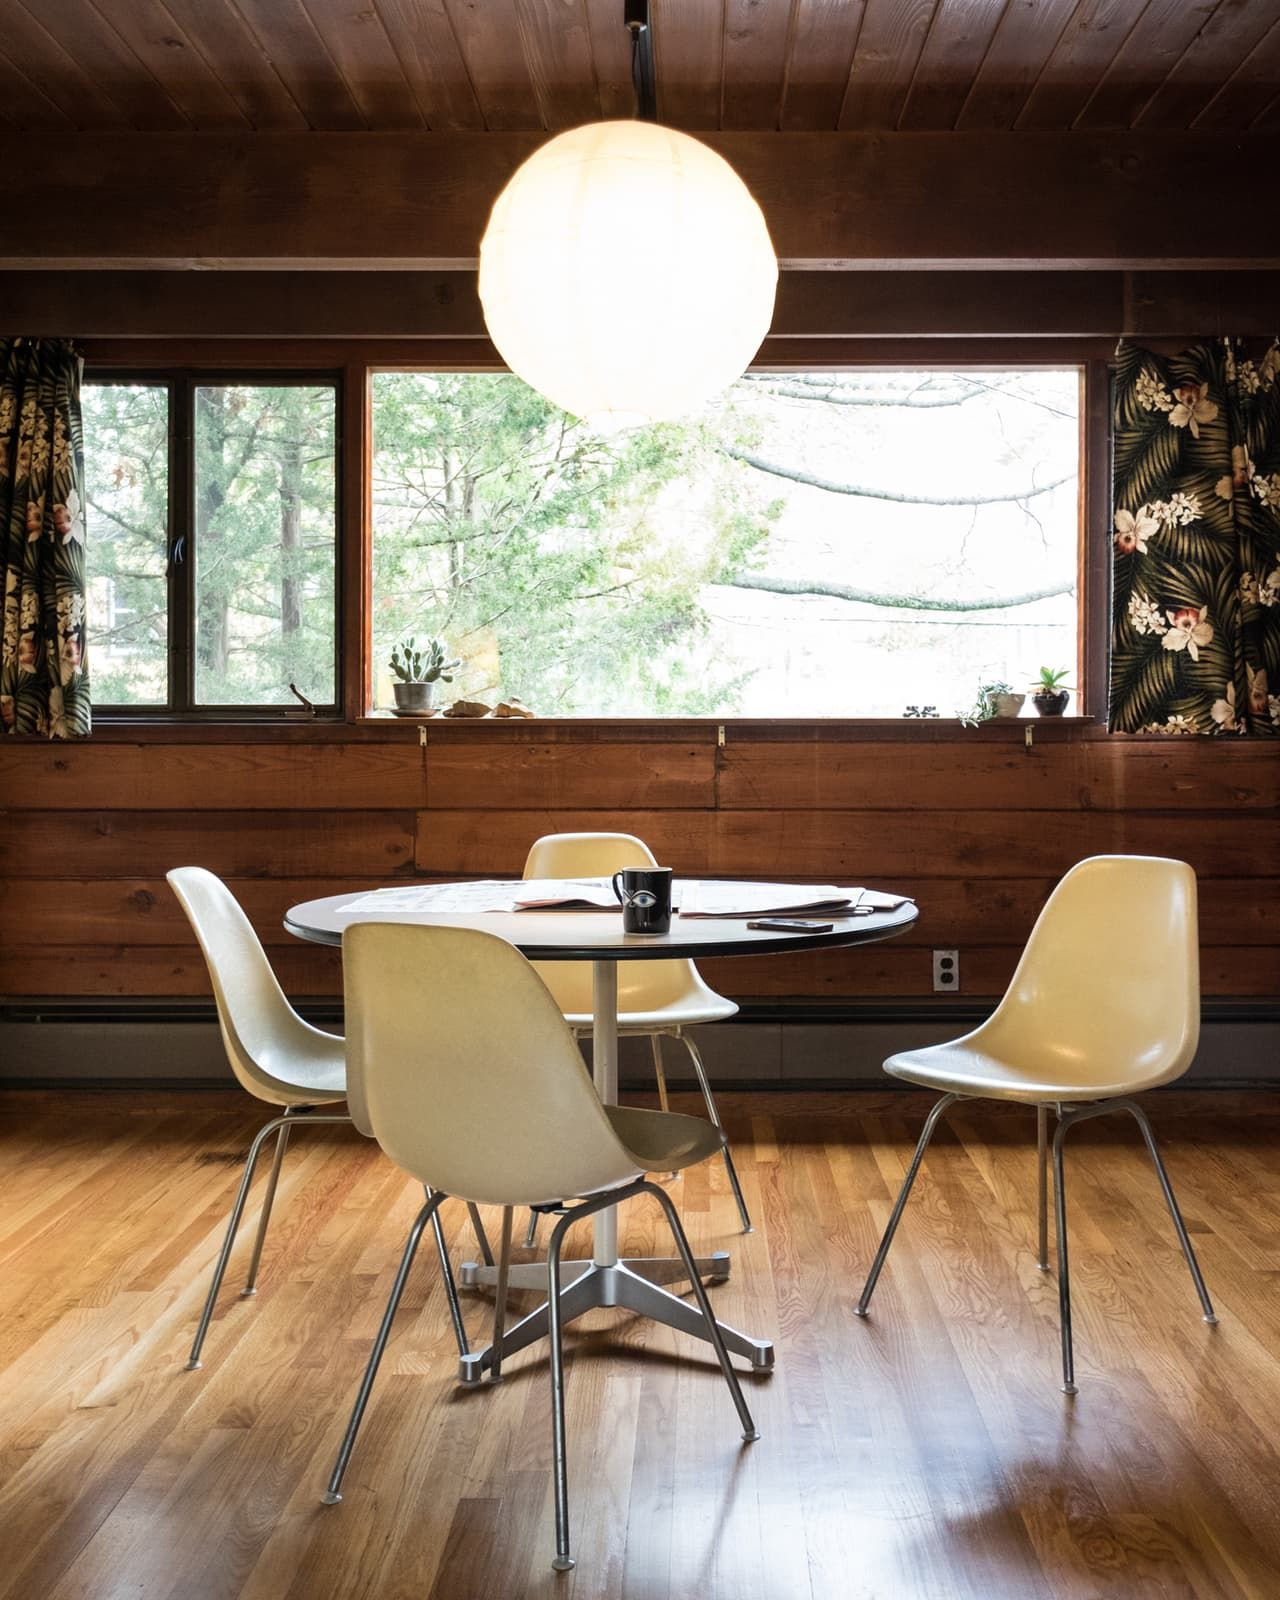 Eames dining set